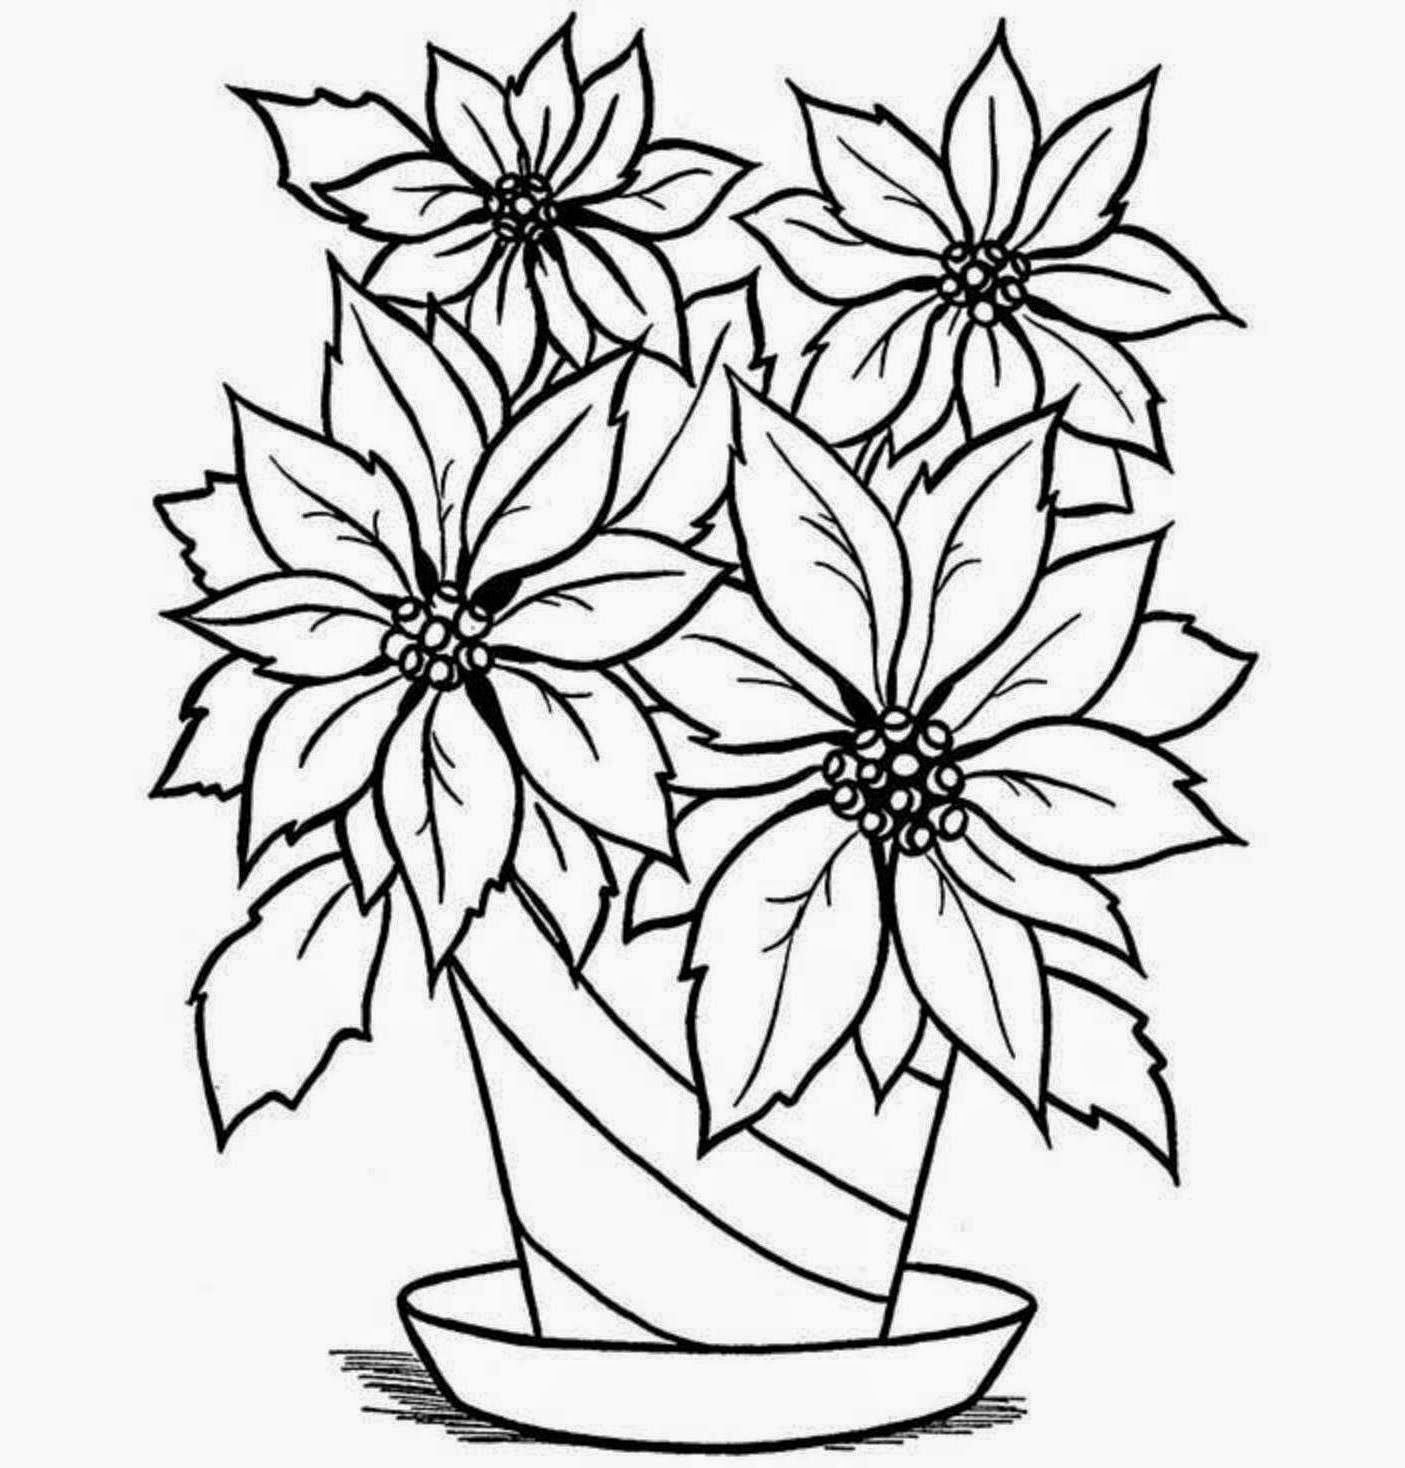 1405x1468 Colour Drawing Free Wallpaper Flowers Vase Coloring